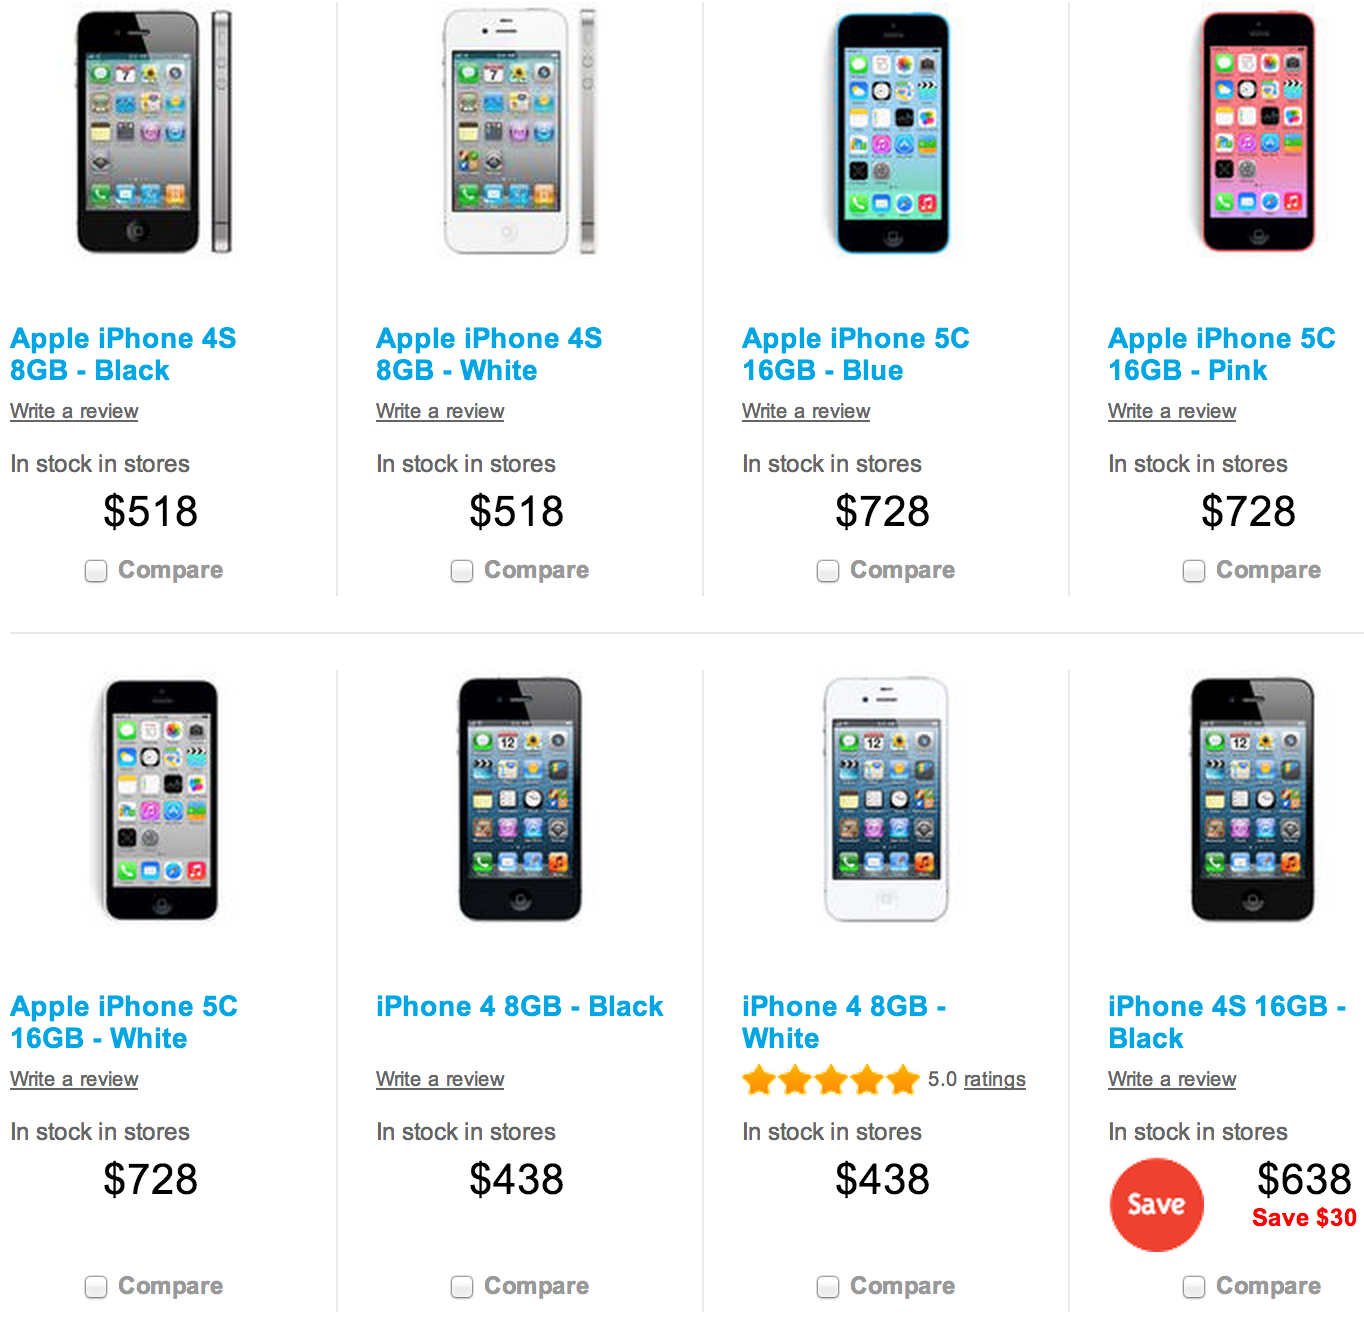 Big W Now Selling IPhone 5c Models 728